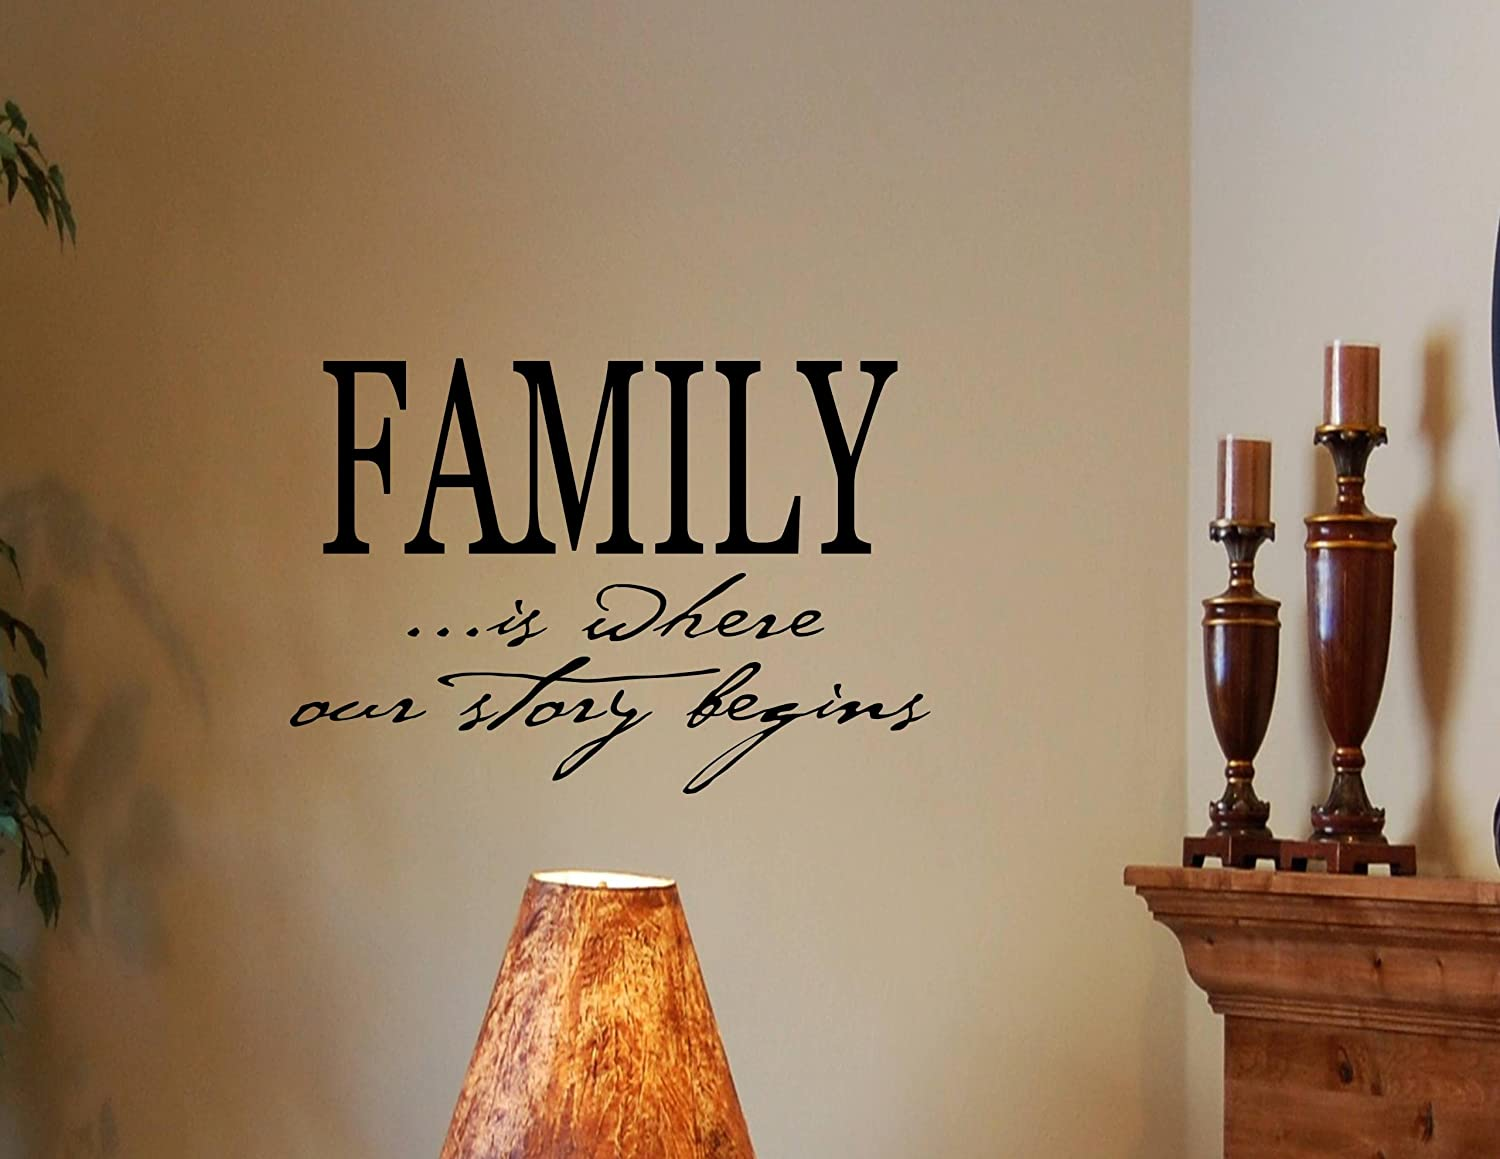 Amazoncom FAMILY IS WHERE OUR STORY BEGINS Vinyl Wall Decals - Wall decals about family